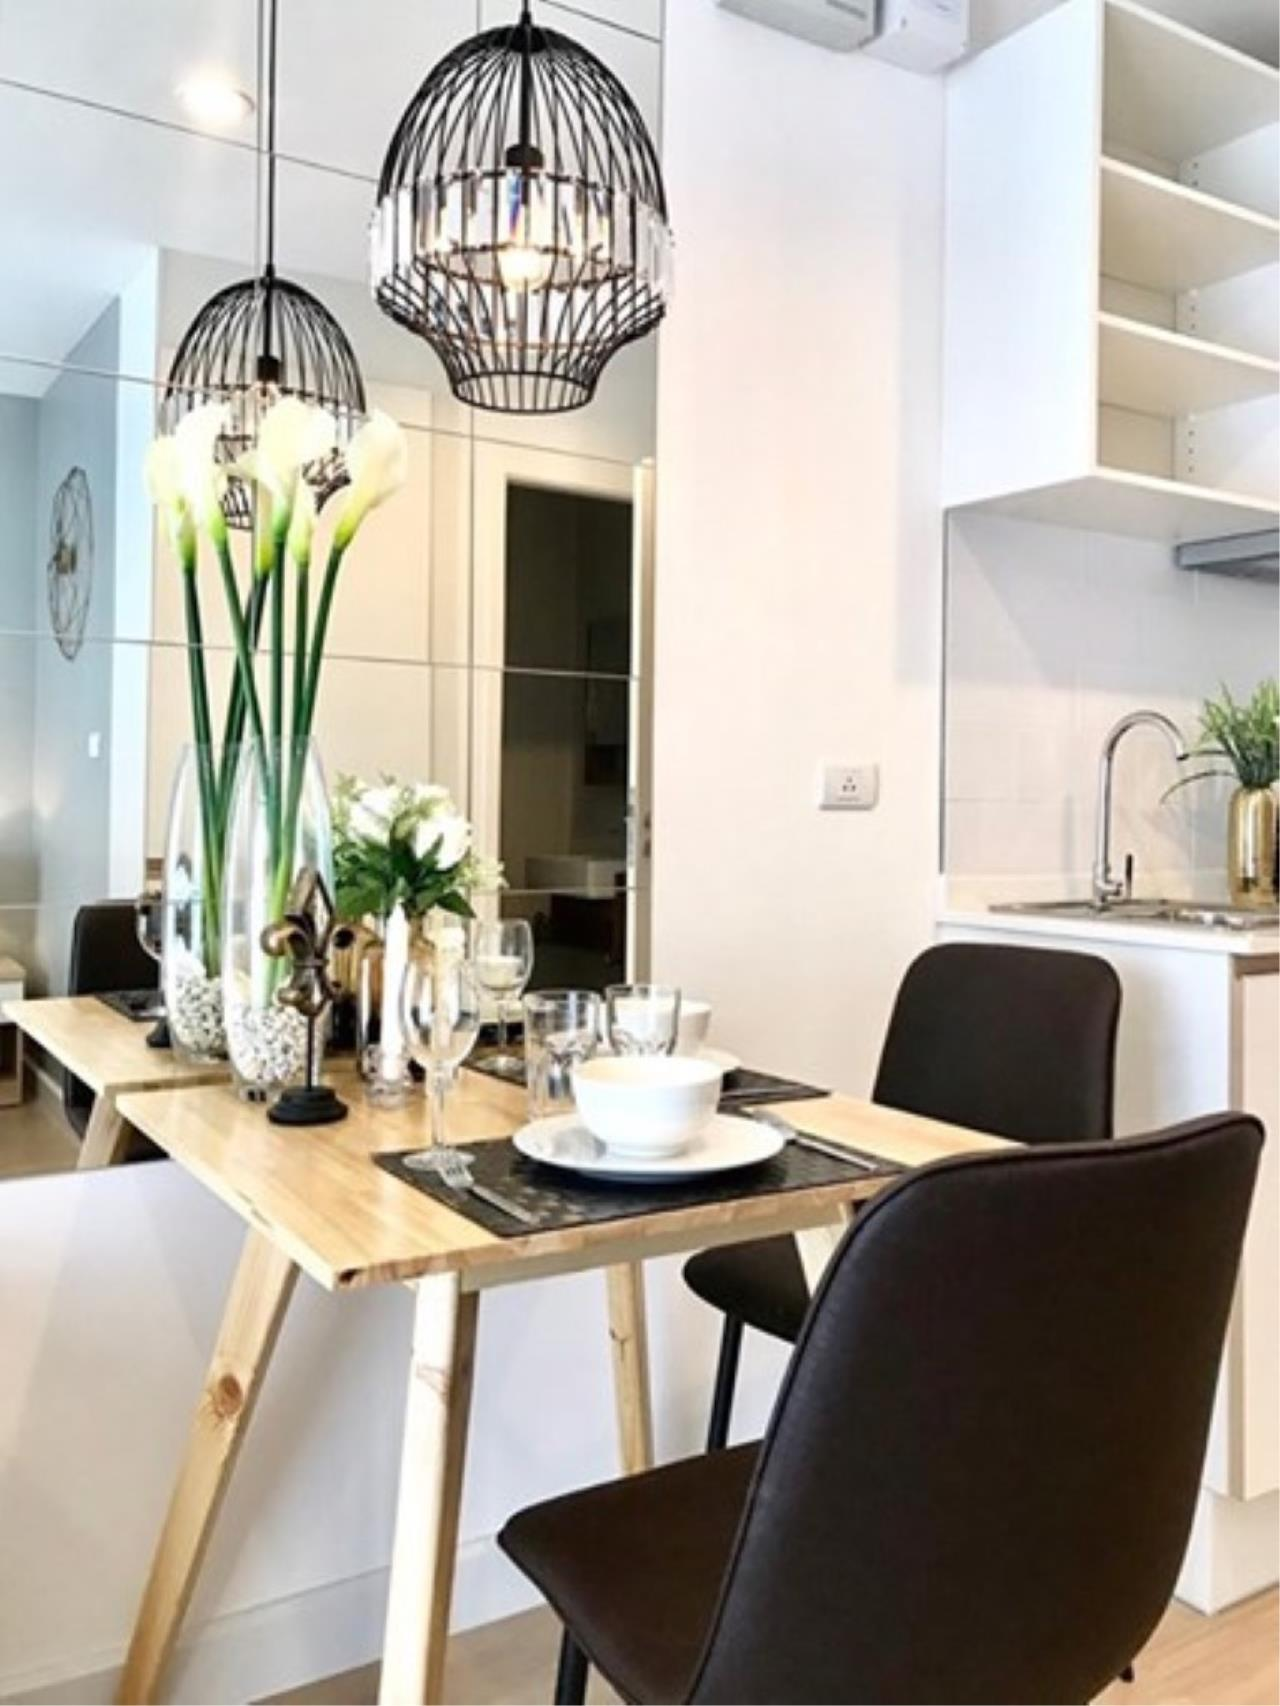 Century21 Skylux Agency's The Nest Sukhumvit 22 / Condo For Rent / 1 Bedroom / 25 SQM / MRT Queen Sirikit National Convention Centre / Bangkok 1